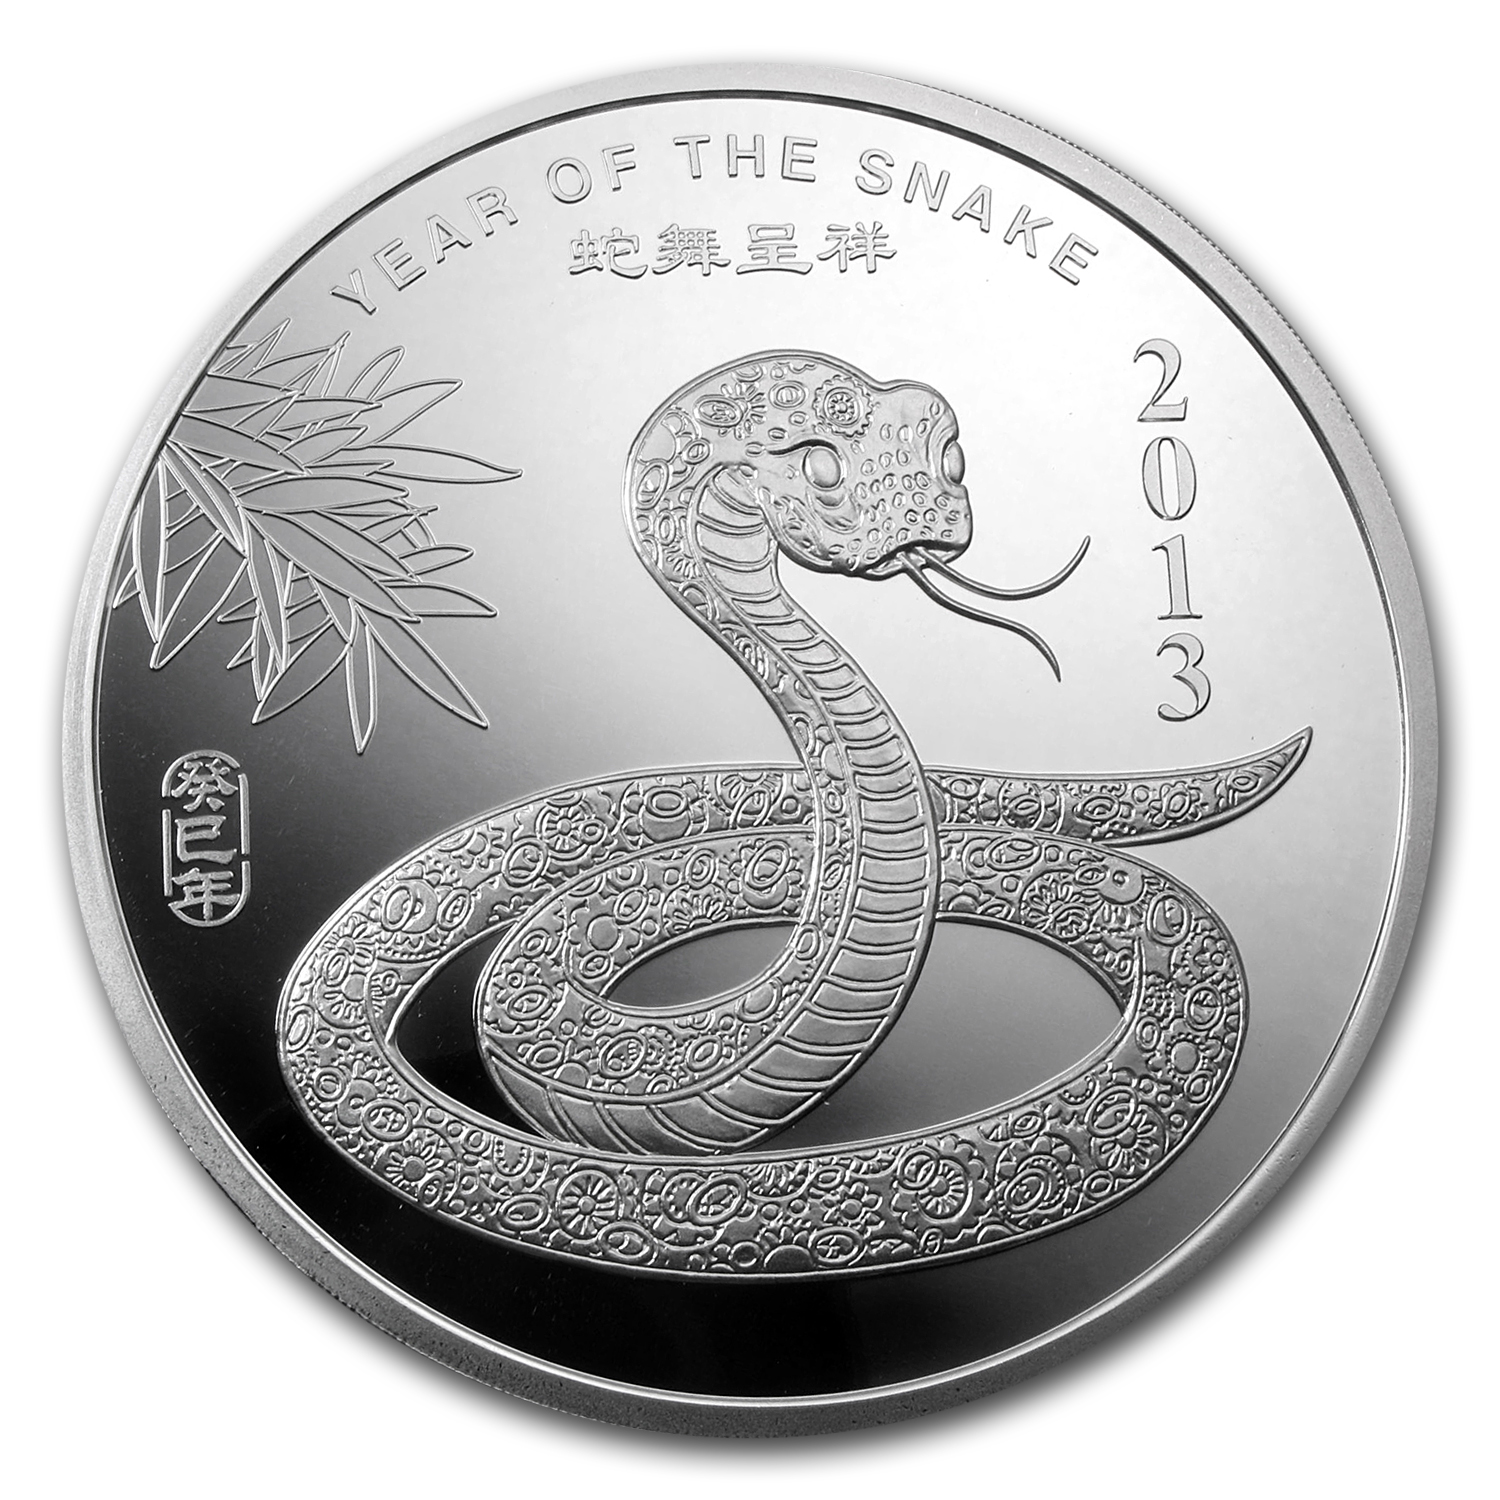 10 oz Silver Rounds - APMEX (2013 Year of the Snake)